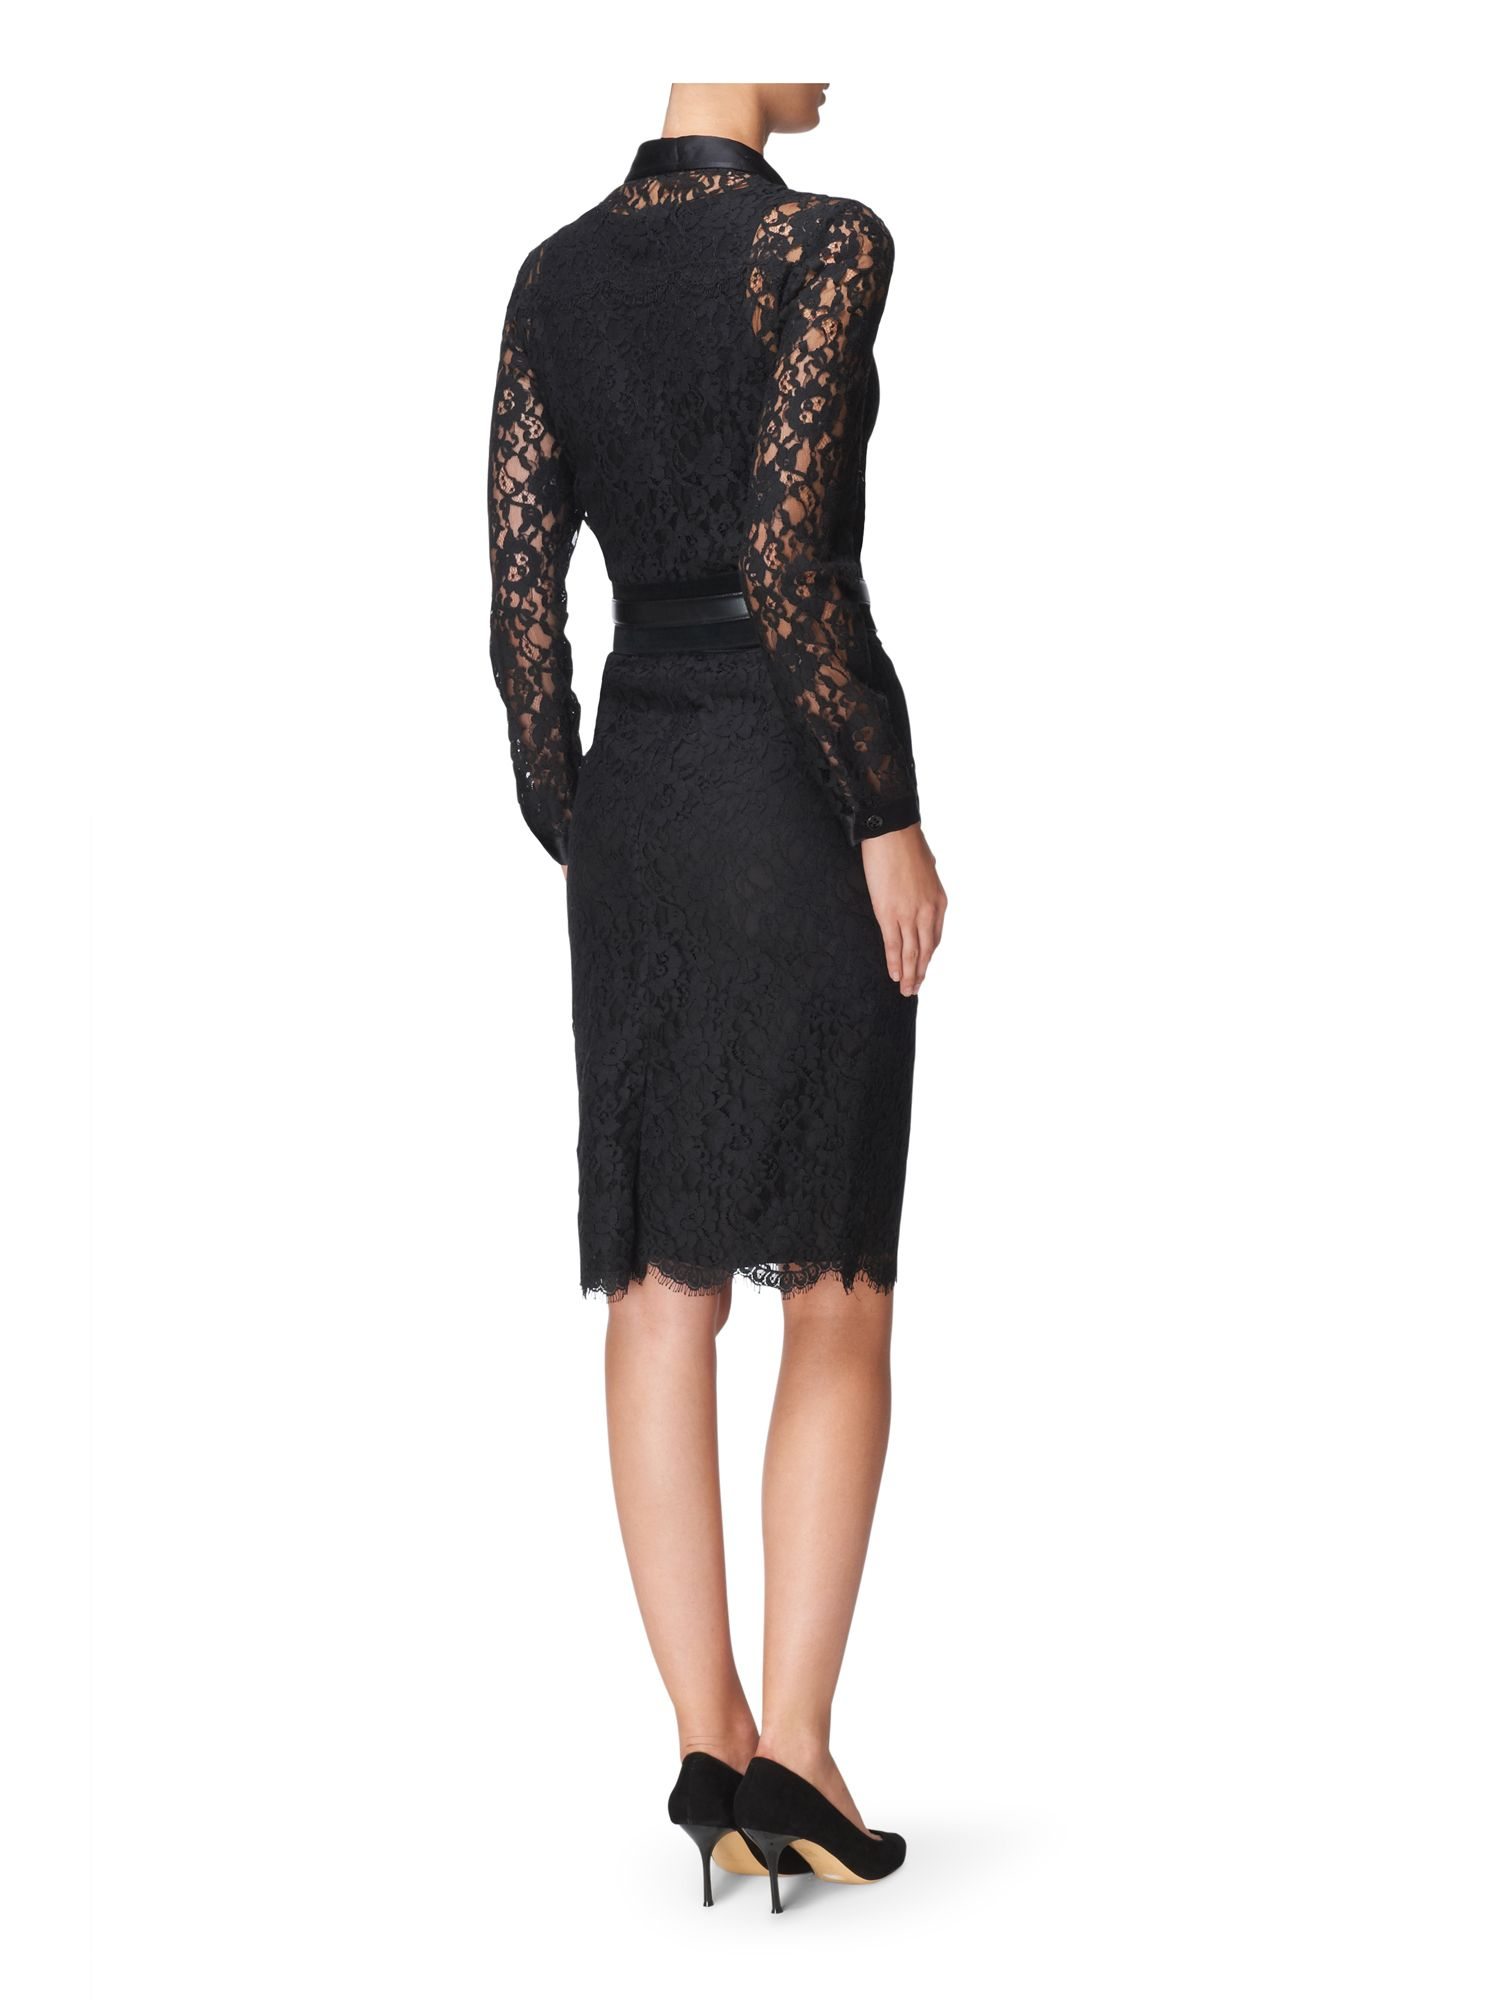 Lace scalloped hem pencil skirt